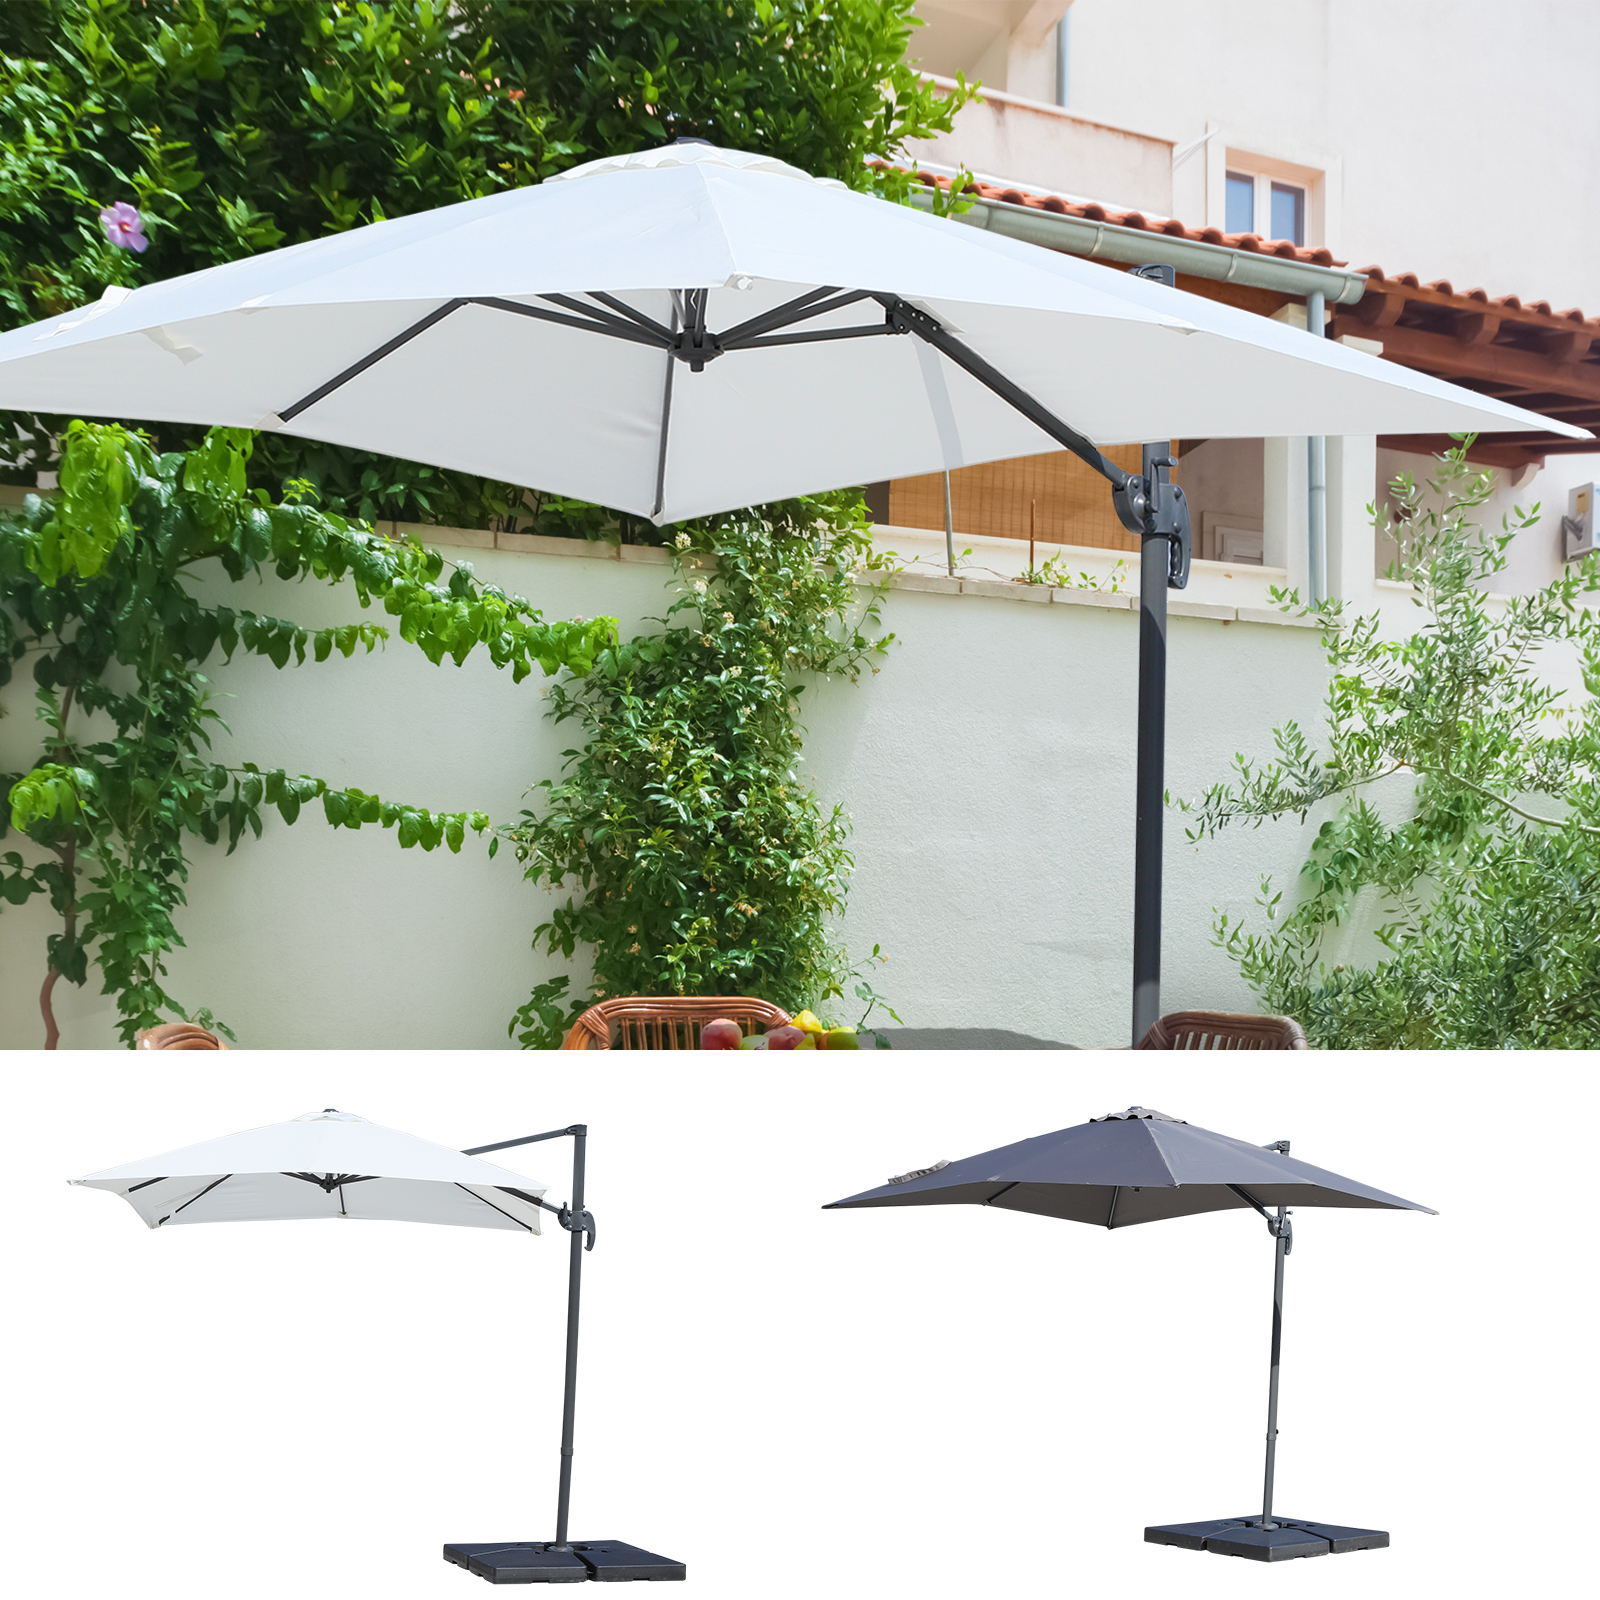 Latest Details About 8'X8' Square Patio Offset Hanging Cantilever Umbrella 360°  Rotation W/ Cross Inside Cantilever Umbrellas (View 13 of 20)